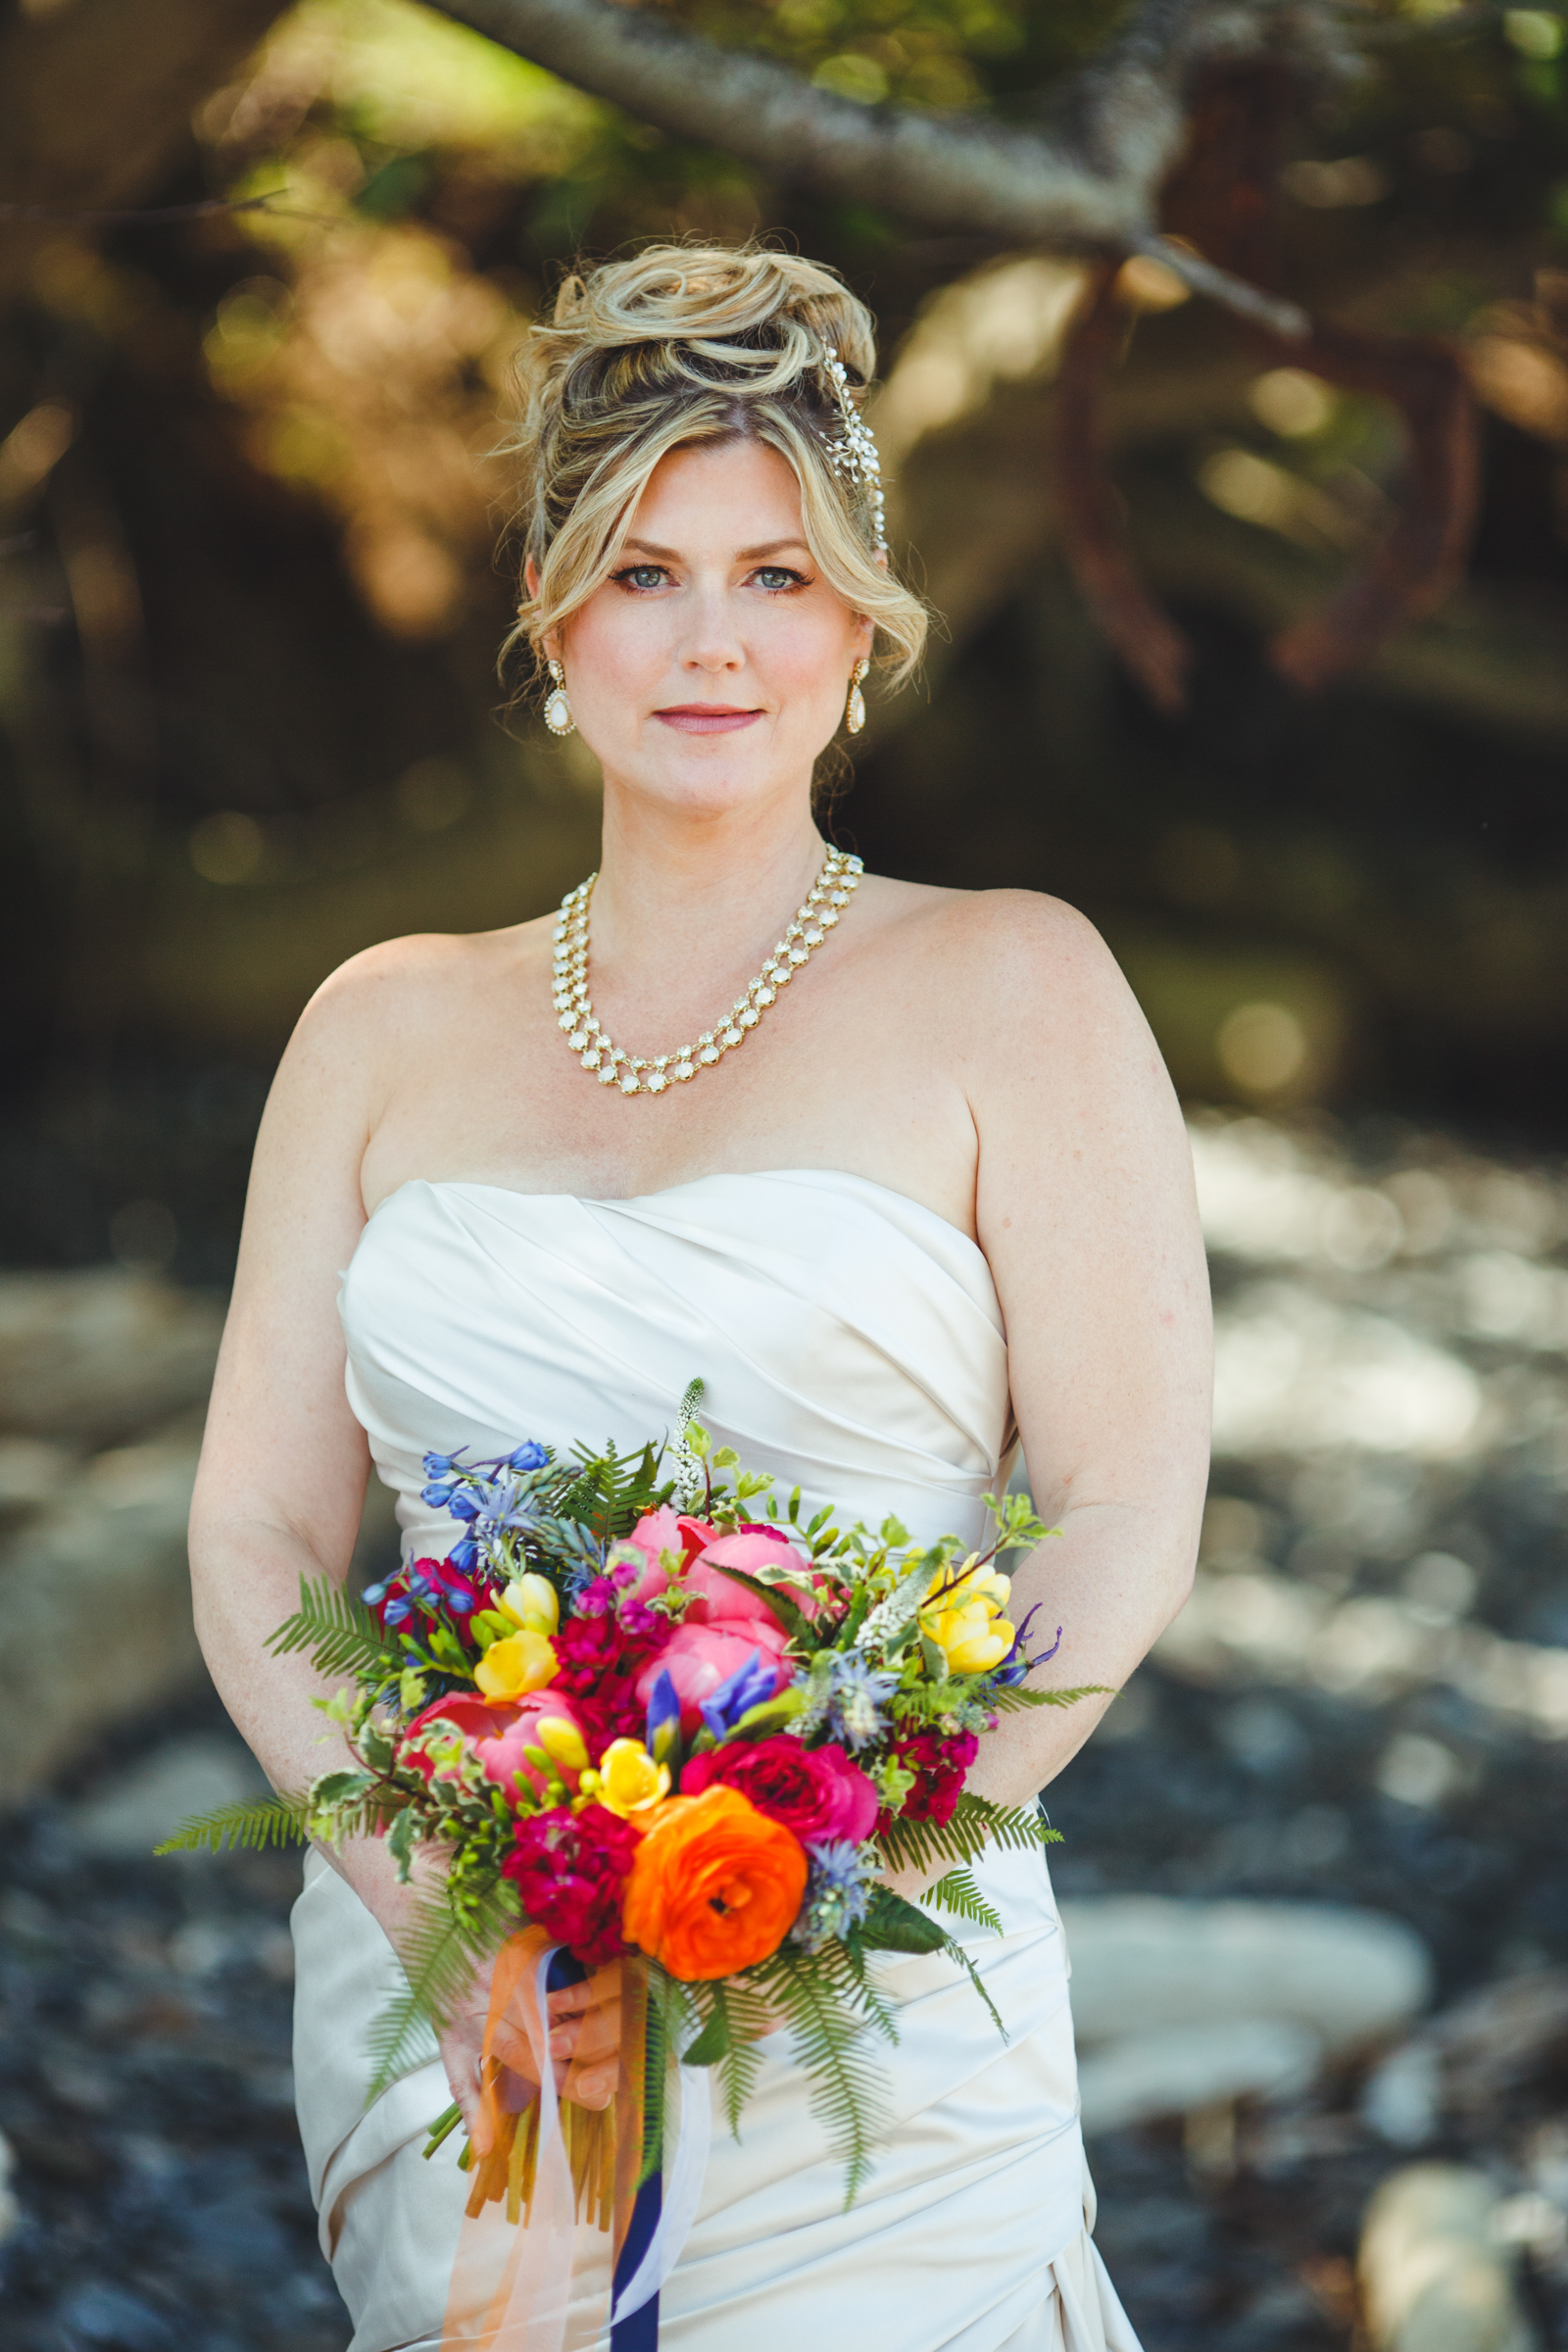 Bride with bright bouquet - photo by Satya Curcio Photography